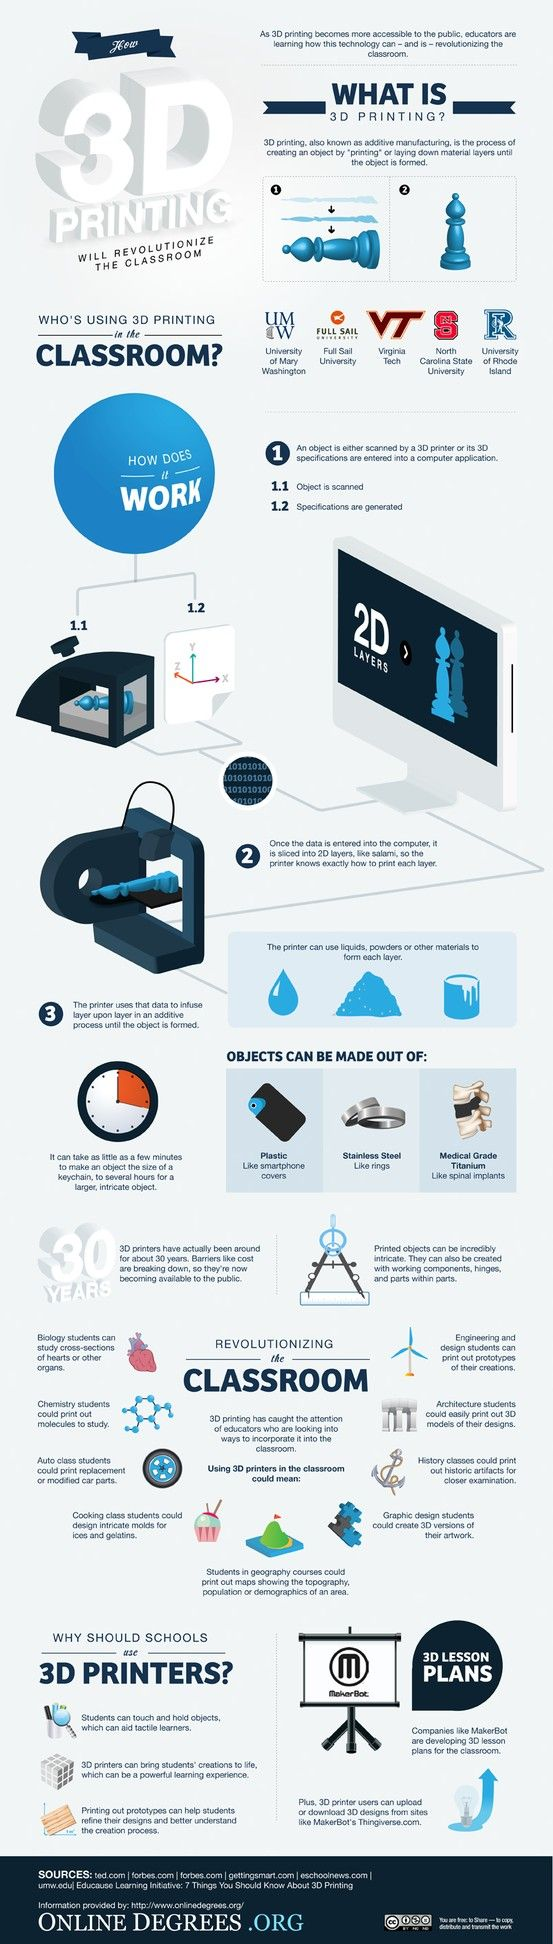 Unique D Printing Machine Ideas On Pinterest D Printing - 5 facts didnt know 3d printers yet